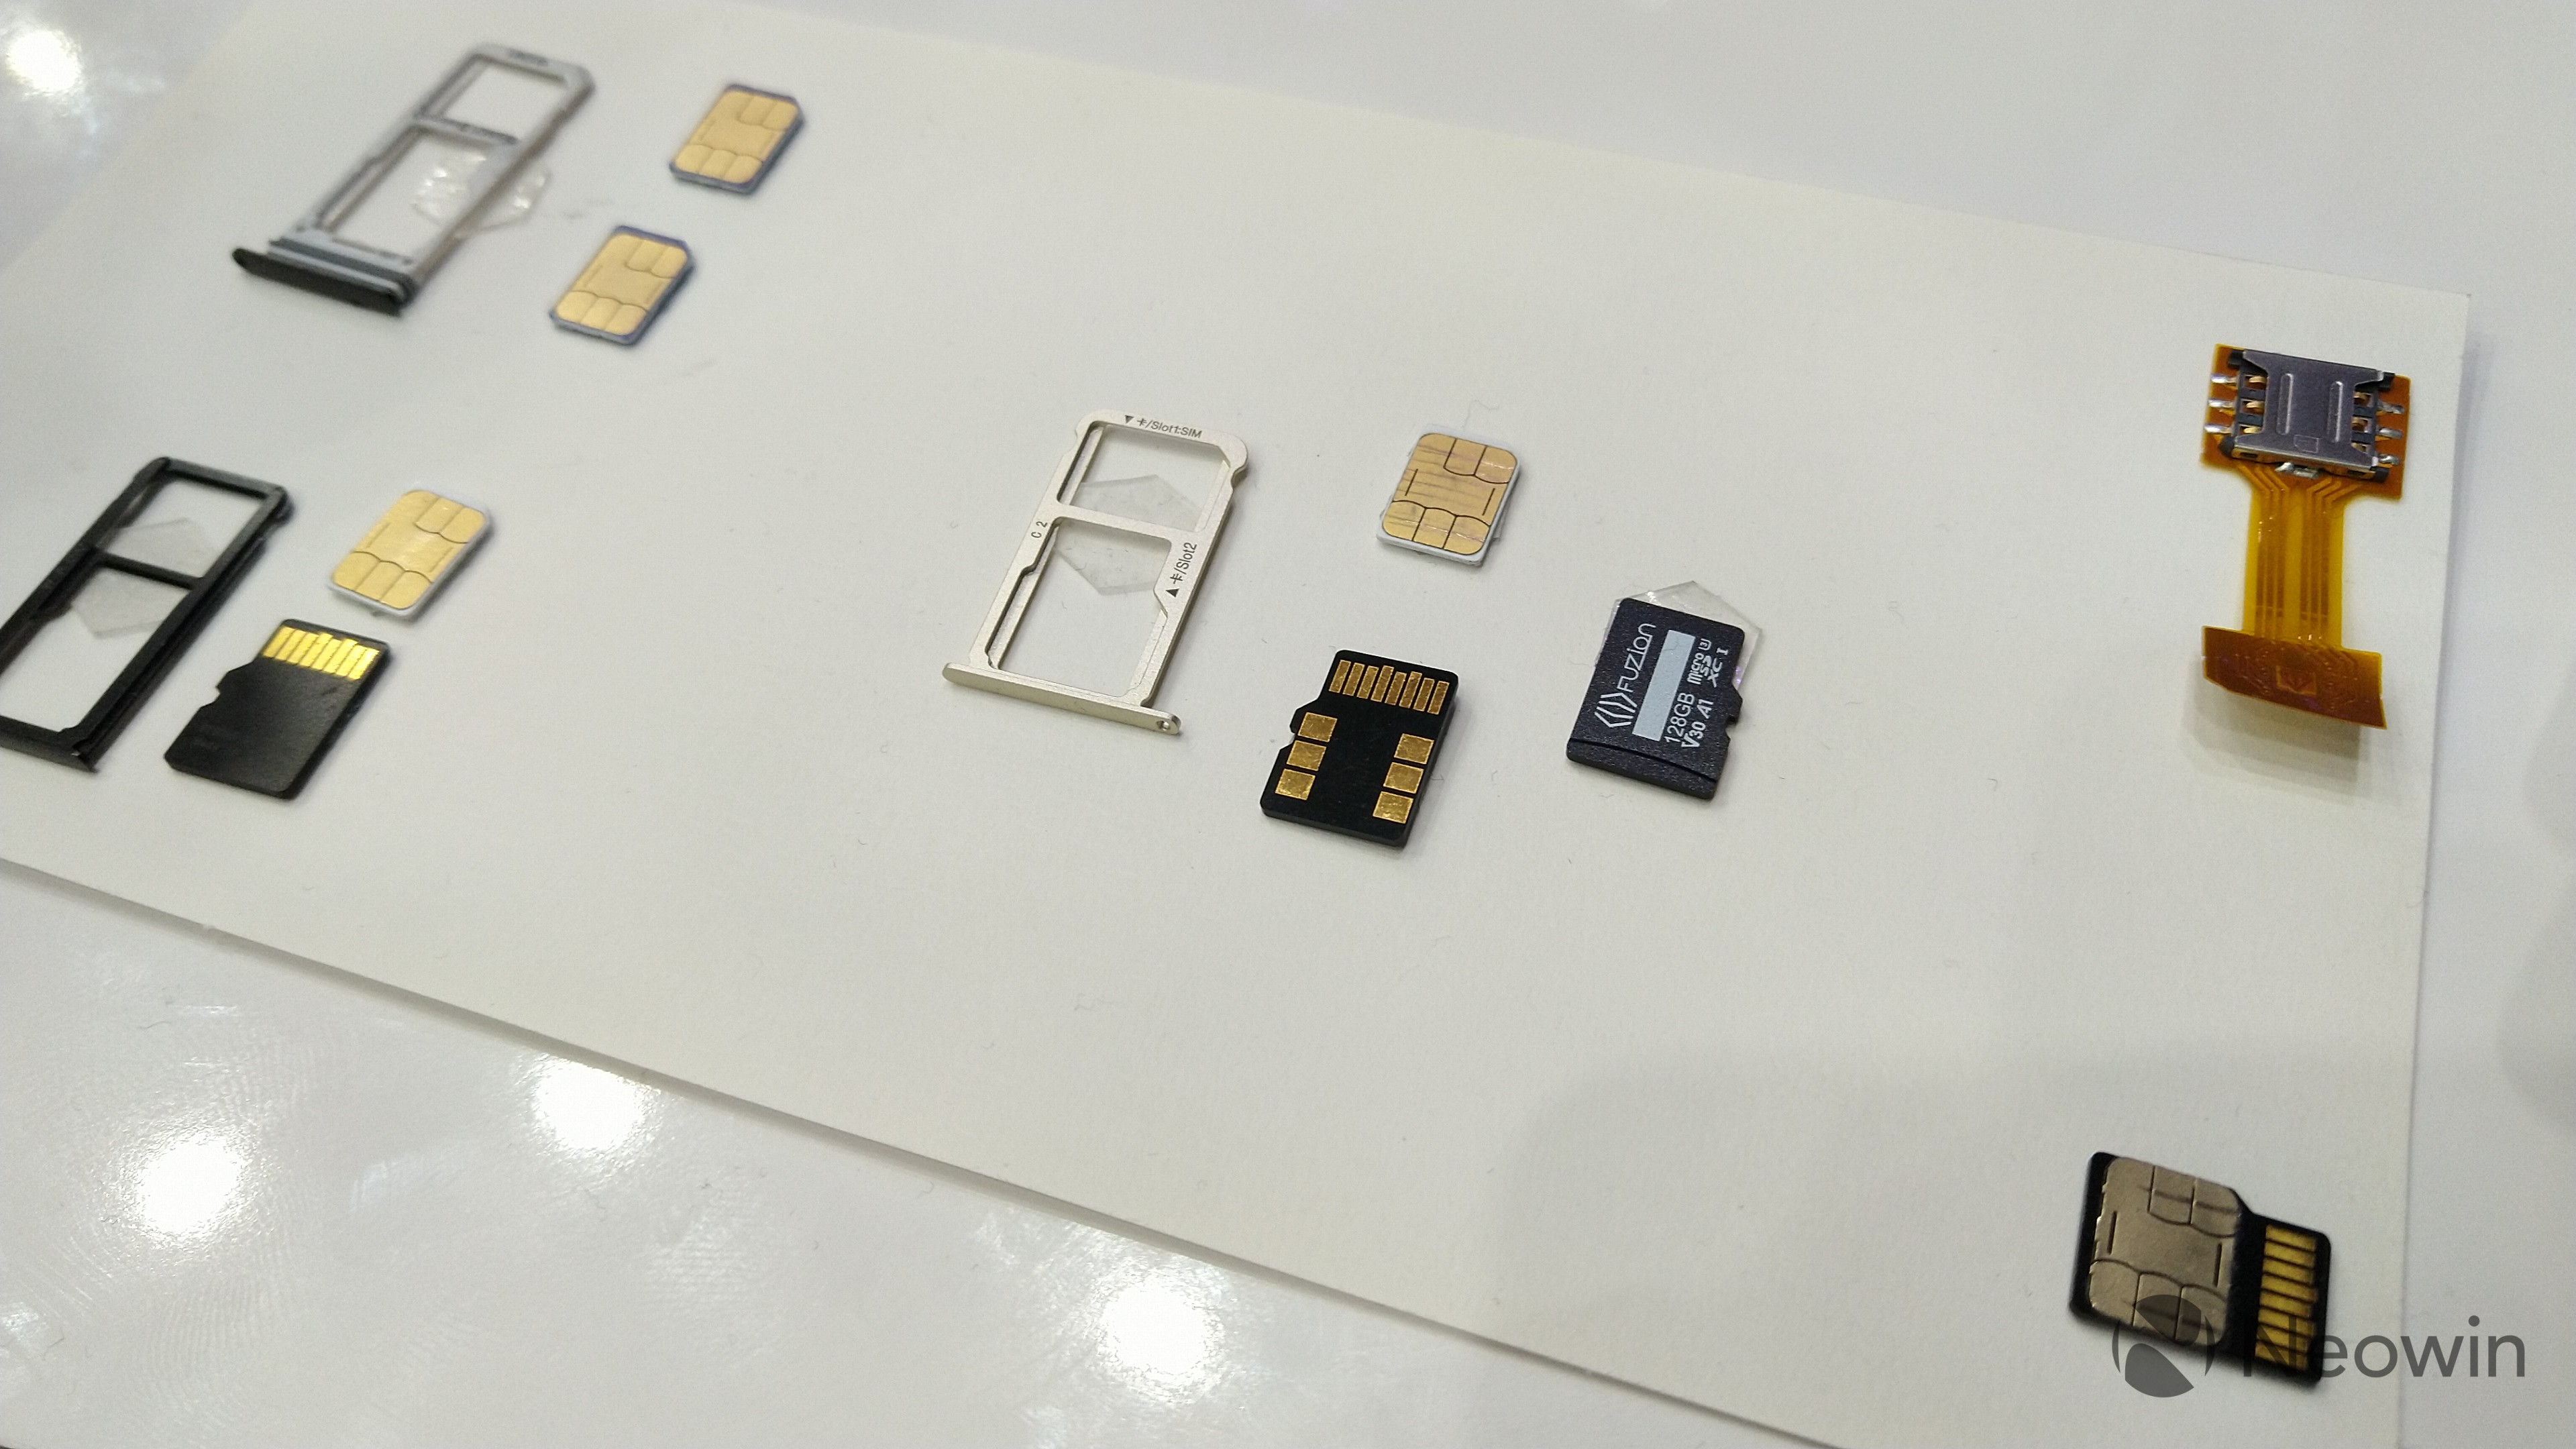 MWC 2019] FuZion cards bring microSD storage and cellular